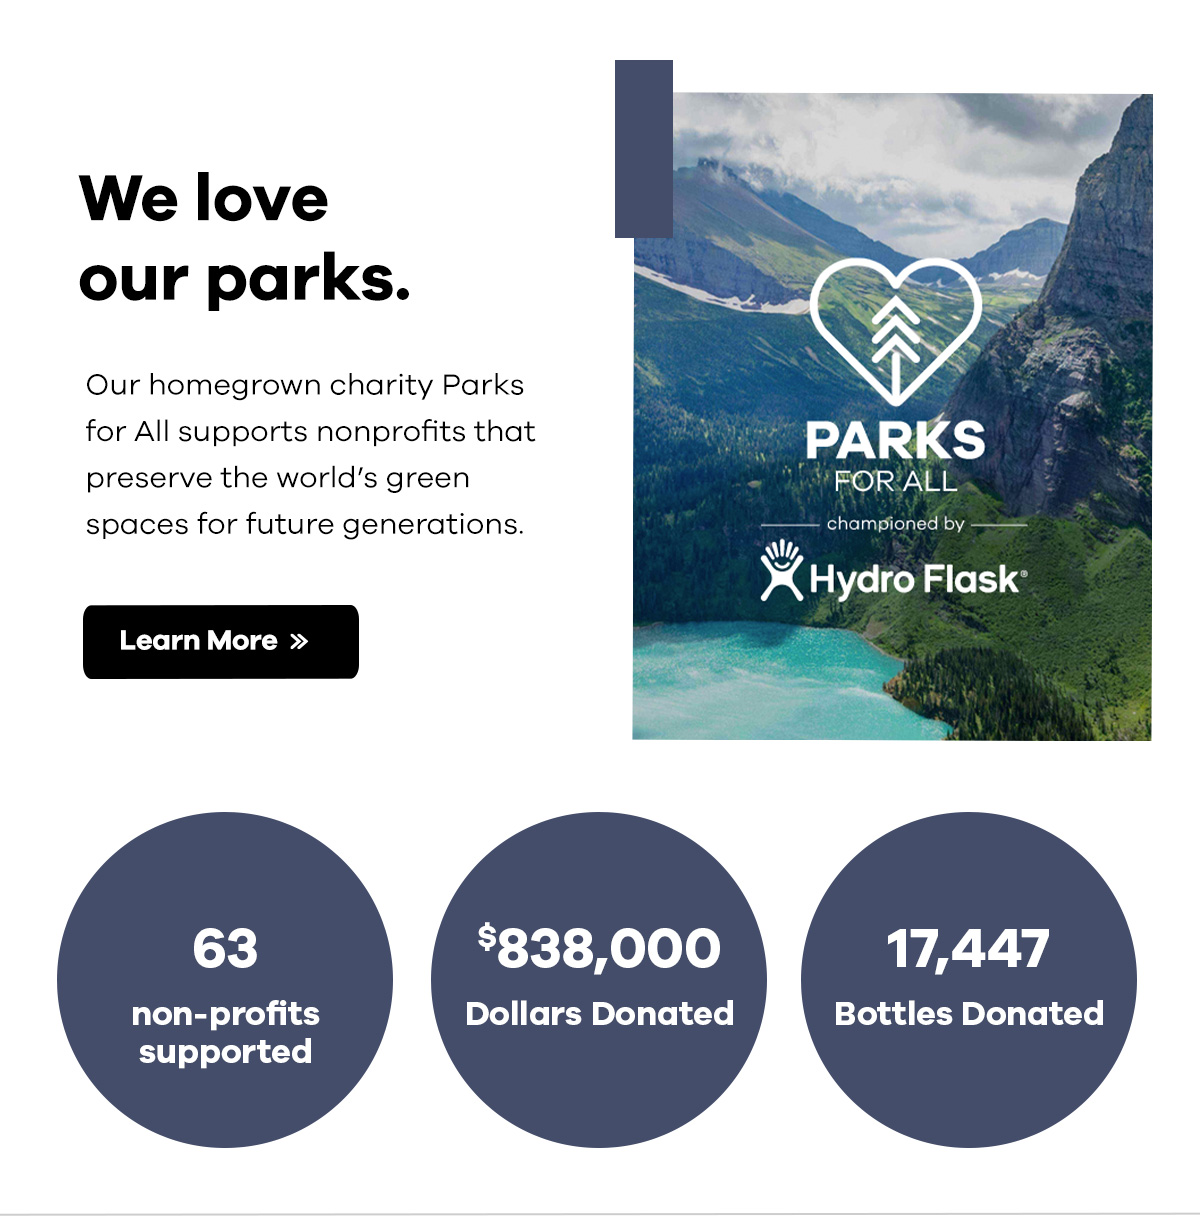 We love our parks. Our homegrown charity Parks for All supports nonprofits that preserve the world's green spaces for future generations. | Learn More >>